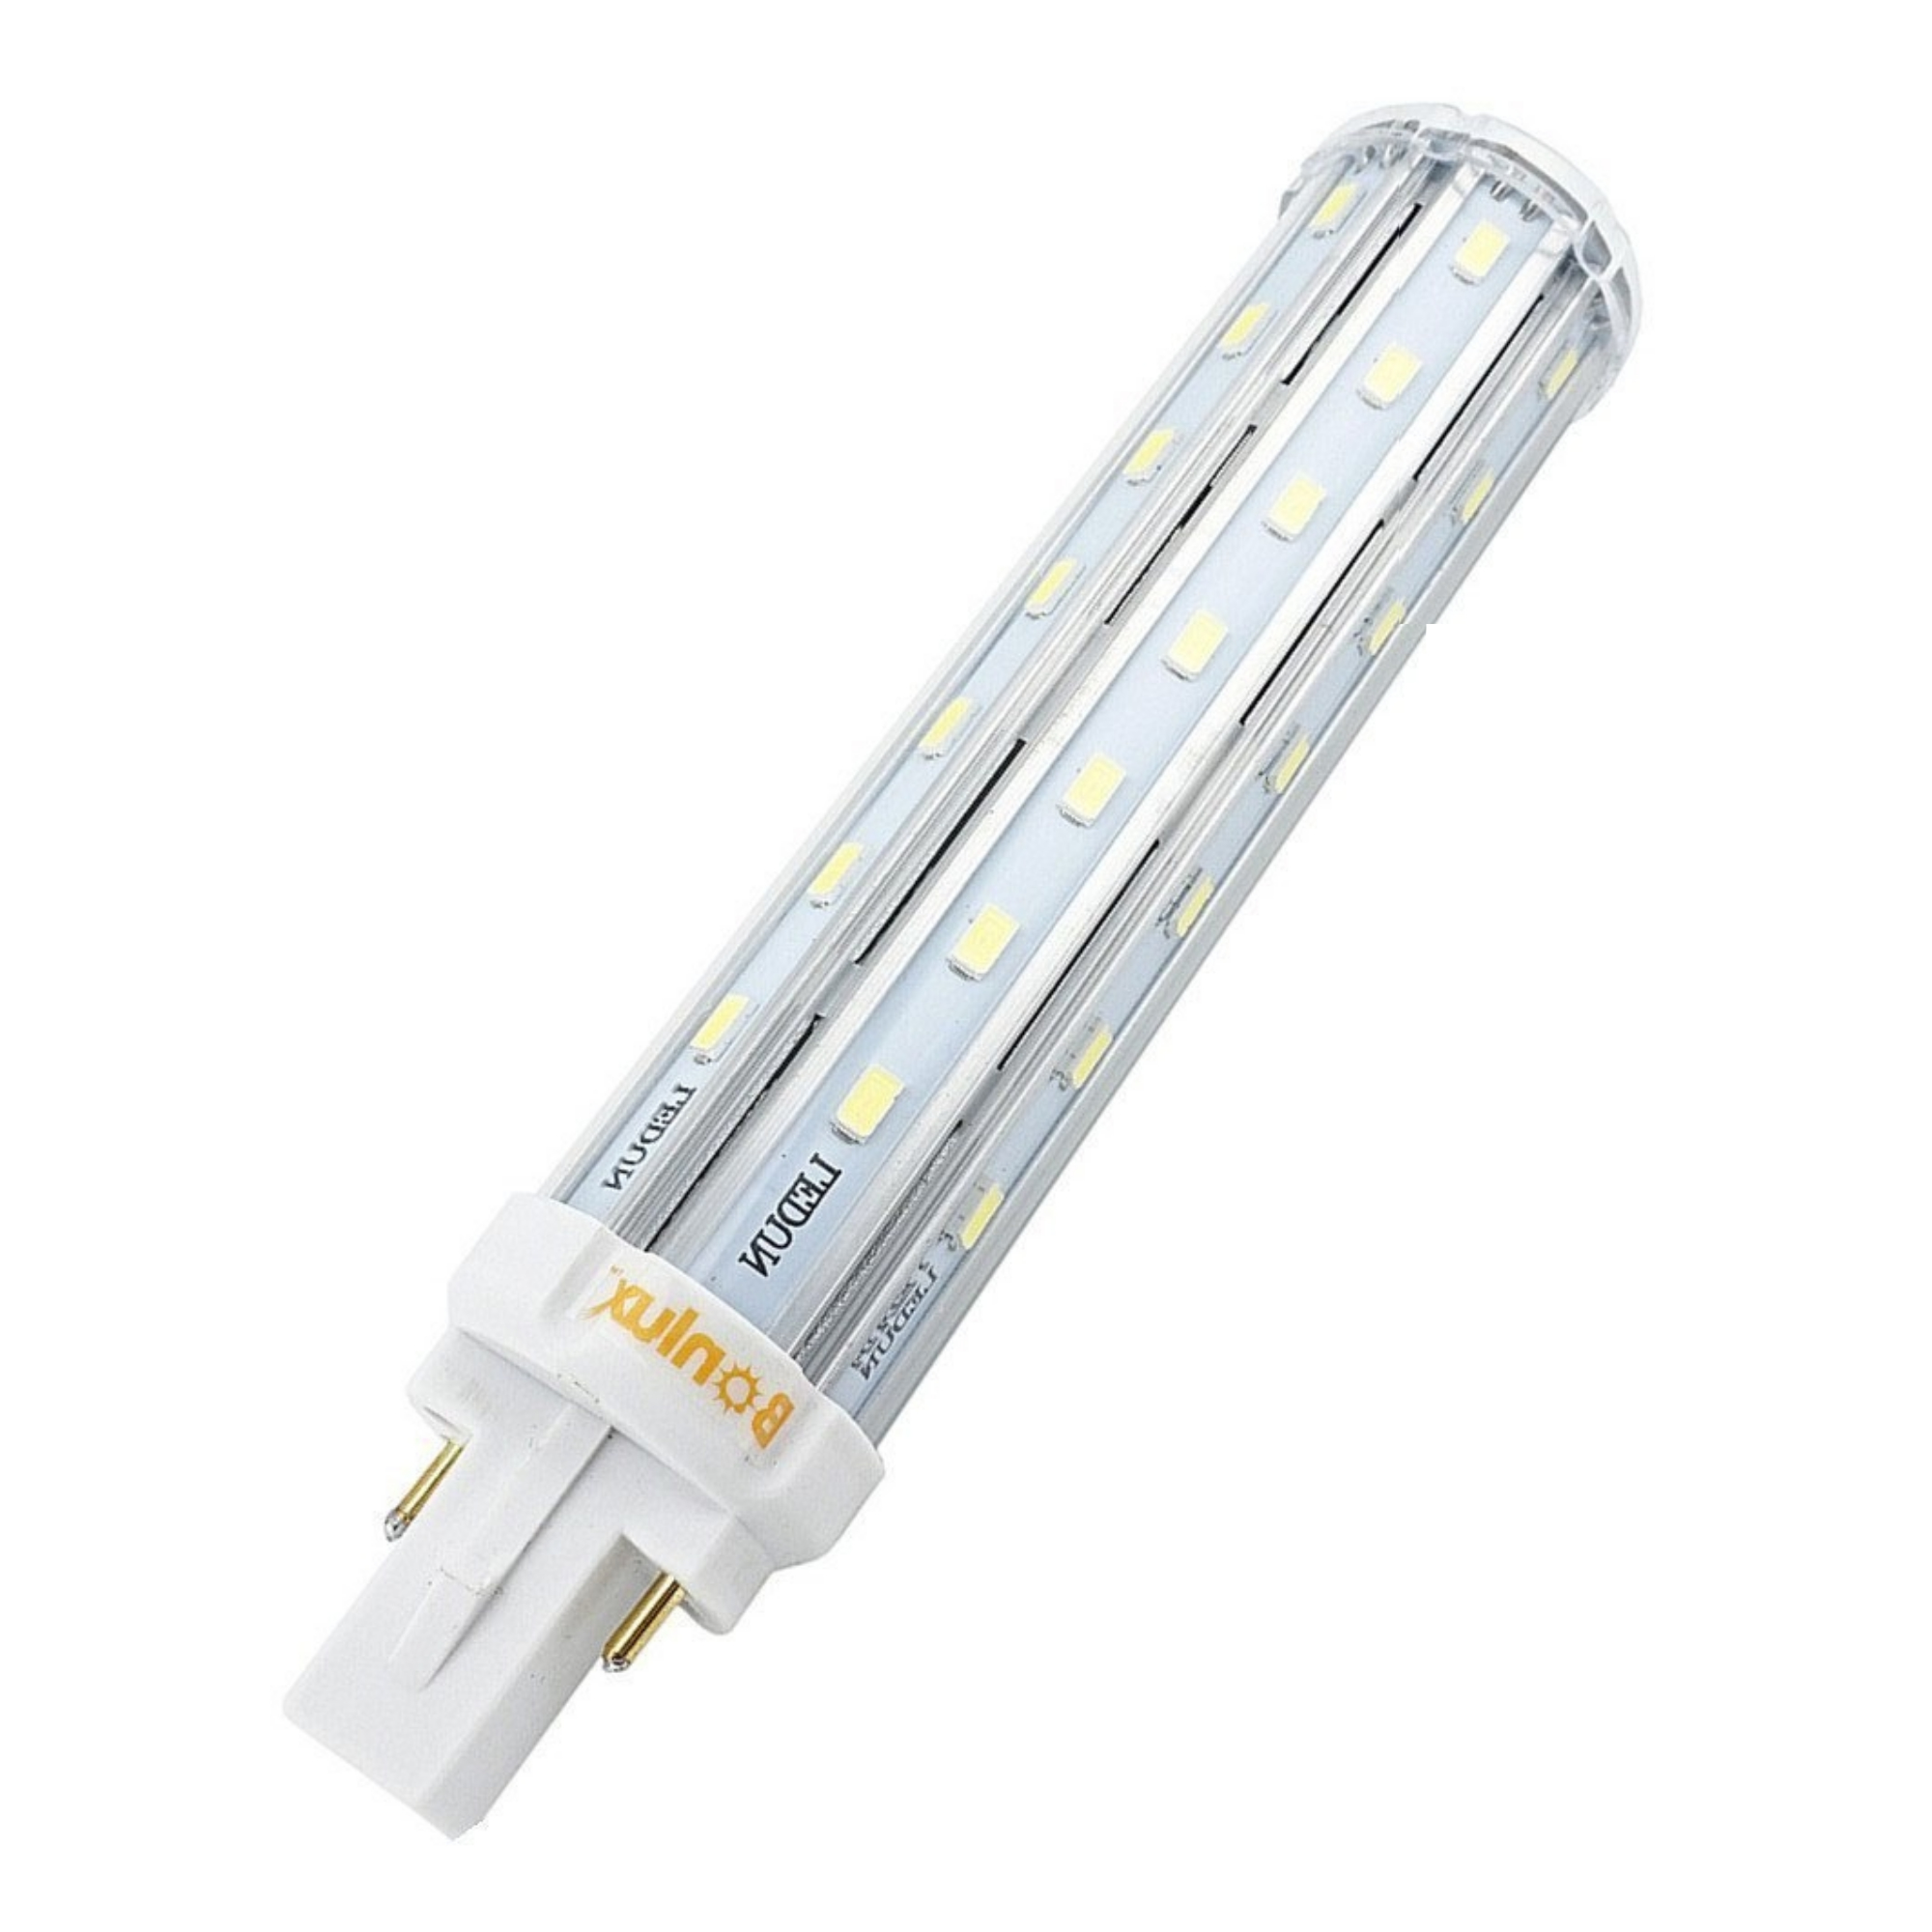 hight resolution of bonlux g24 led pl retrofit lamp universal g24d 2 pin g24q 4 pin pl c horizontal recessed bulb 13w 26w cfl equivalent ballast incompatible remove bypass